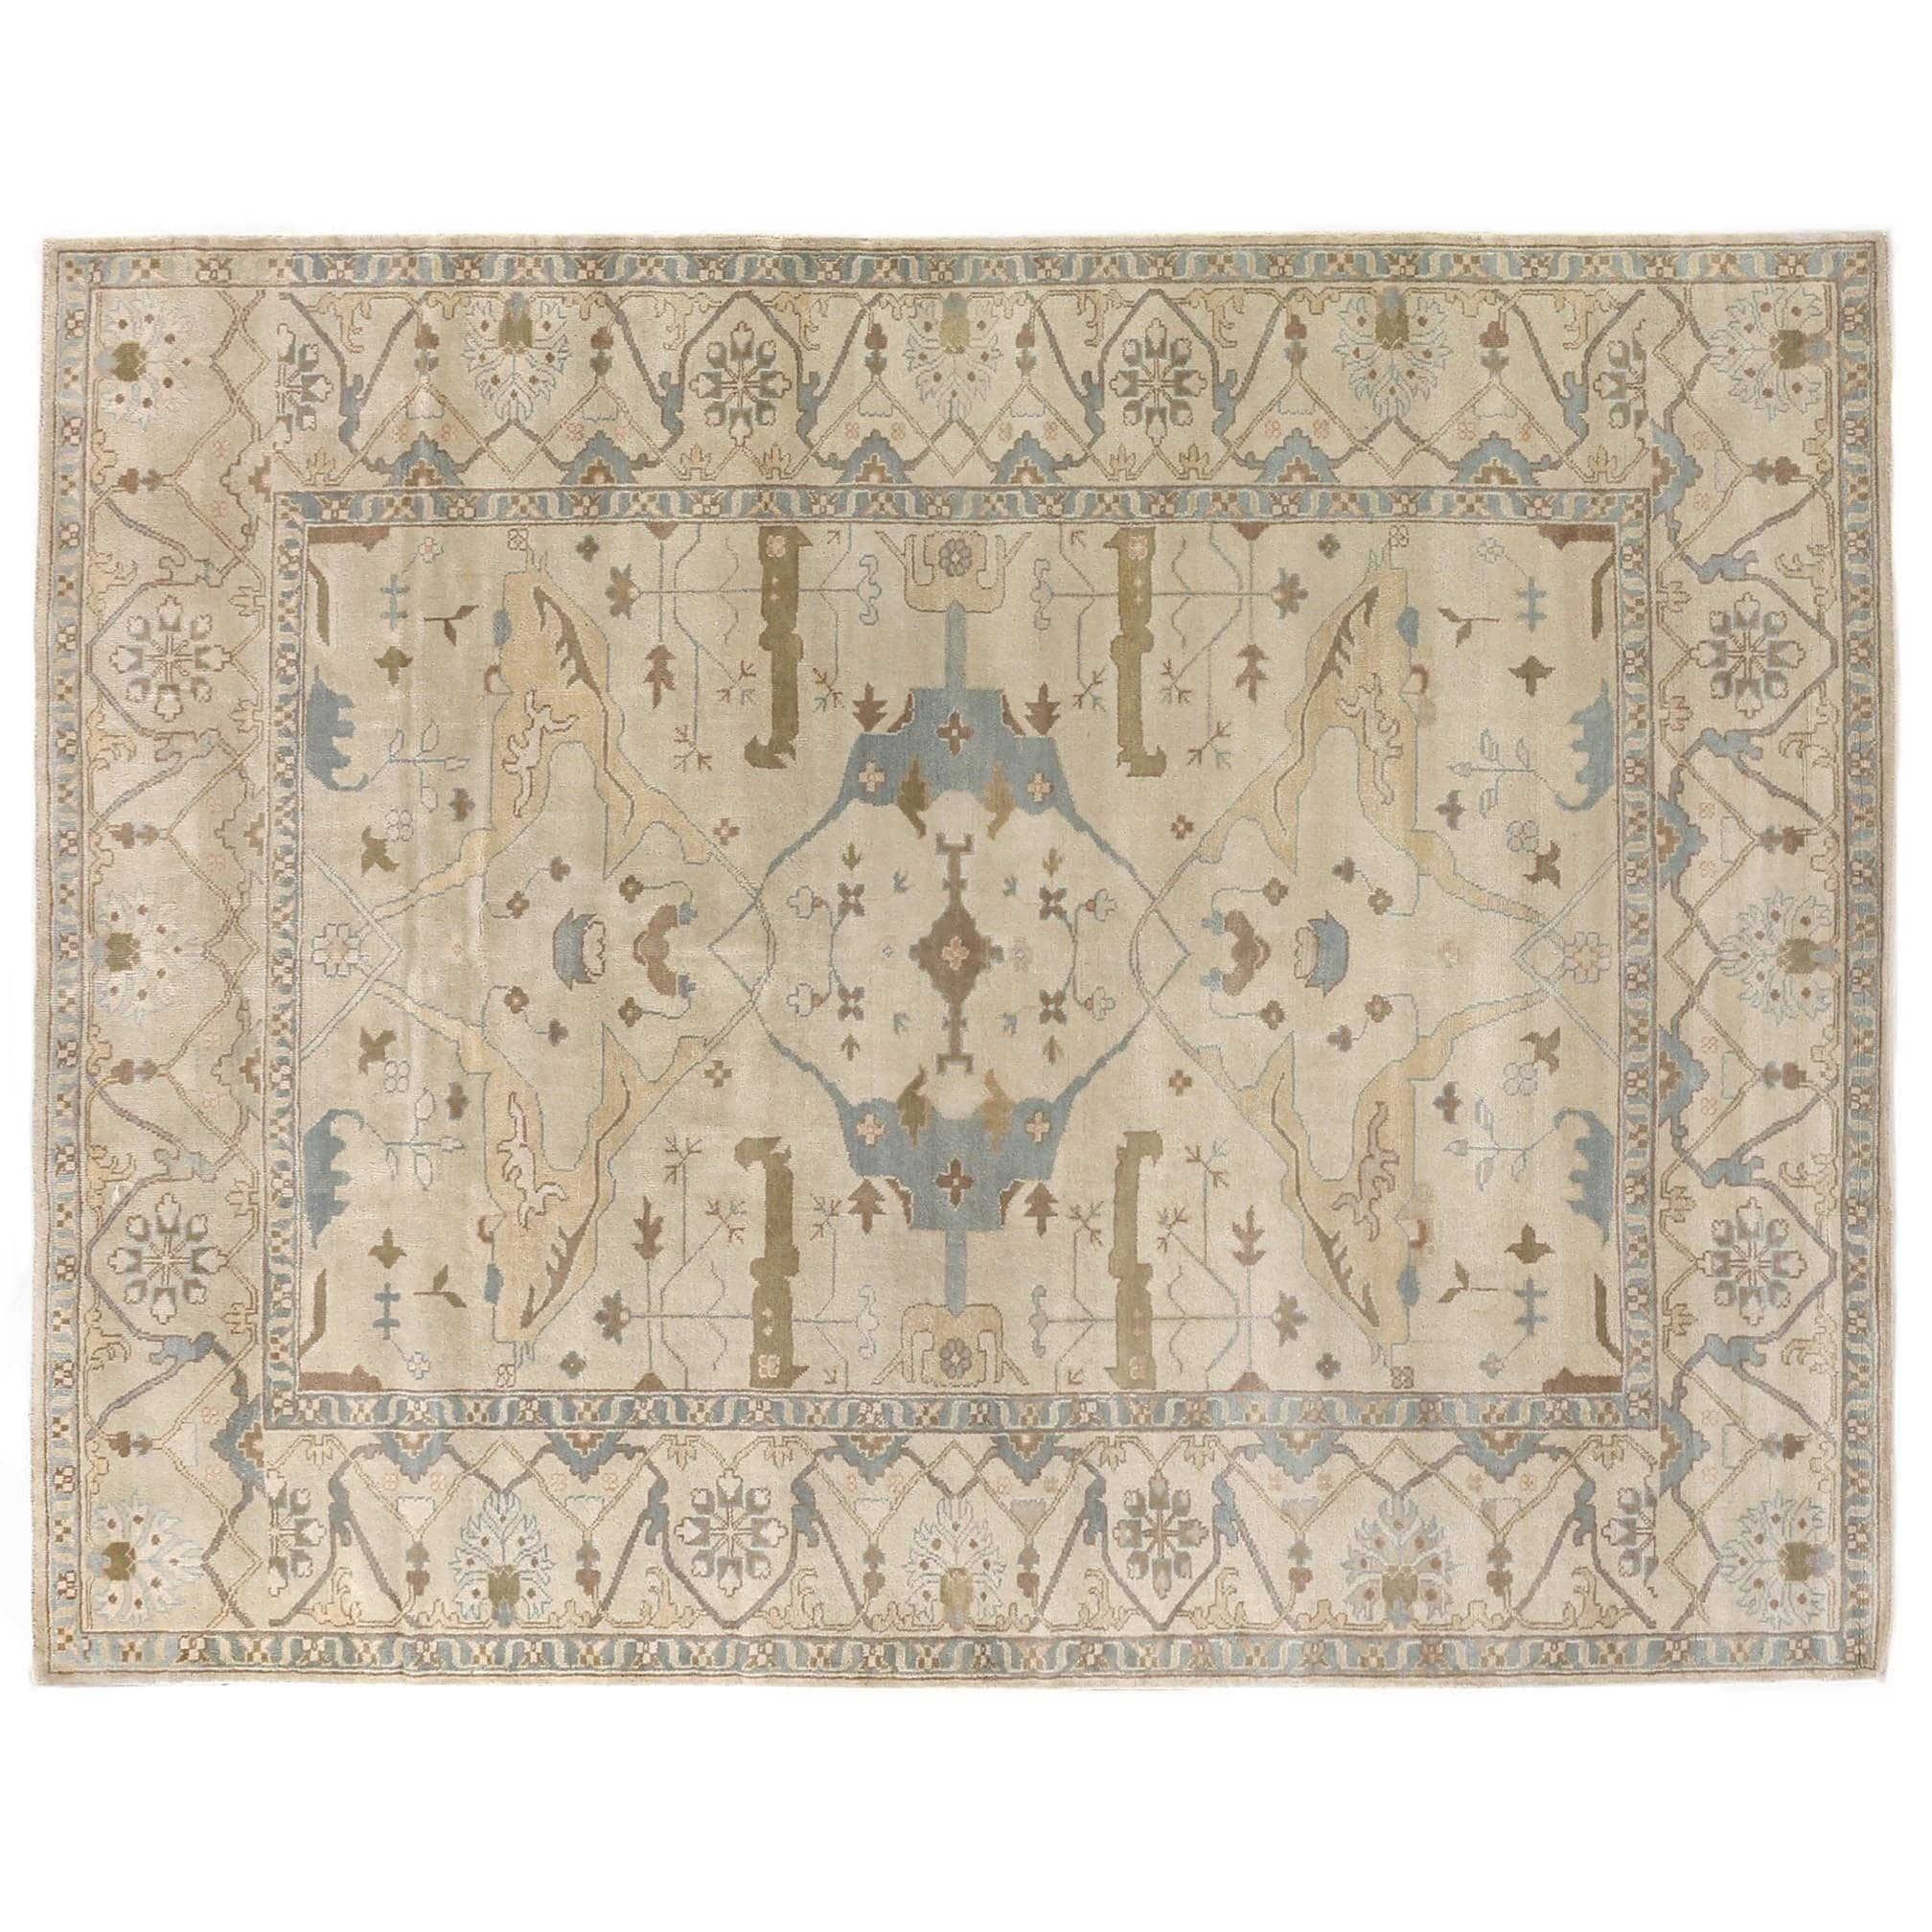 Exquisite Rugs Turkish Oushak Ivory Zealand Wool Rug 9 X 12